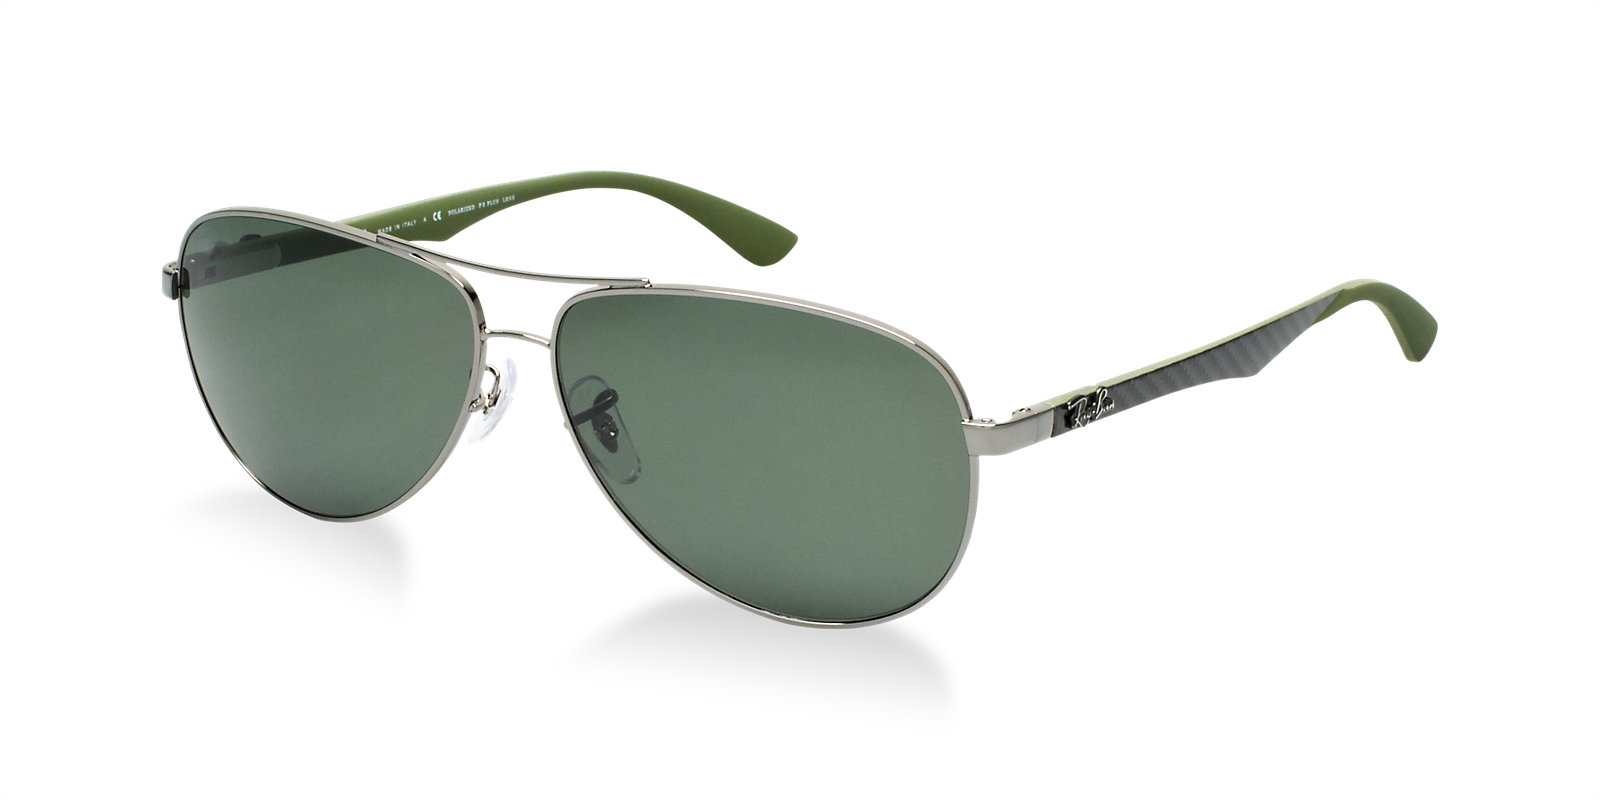 Ray-Ban-Sunglasses-for-Men (14)